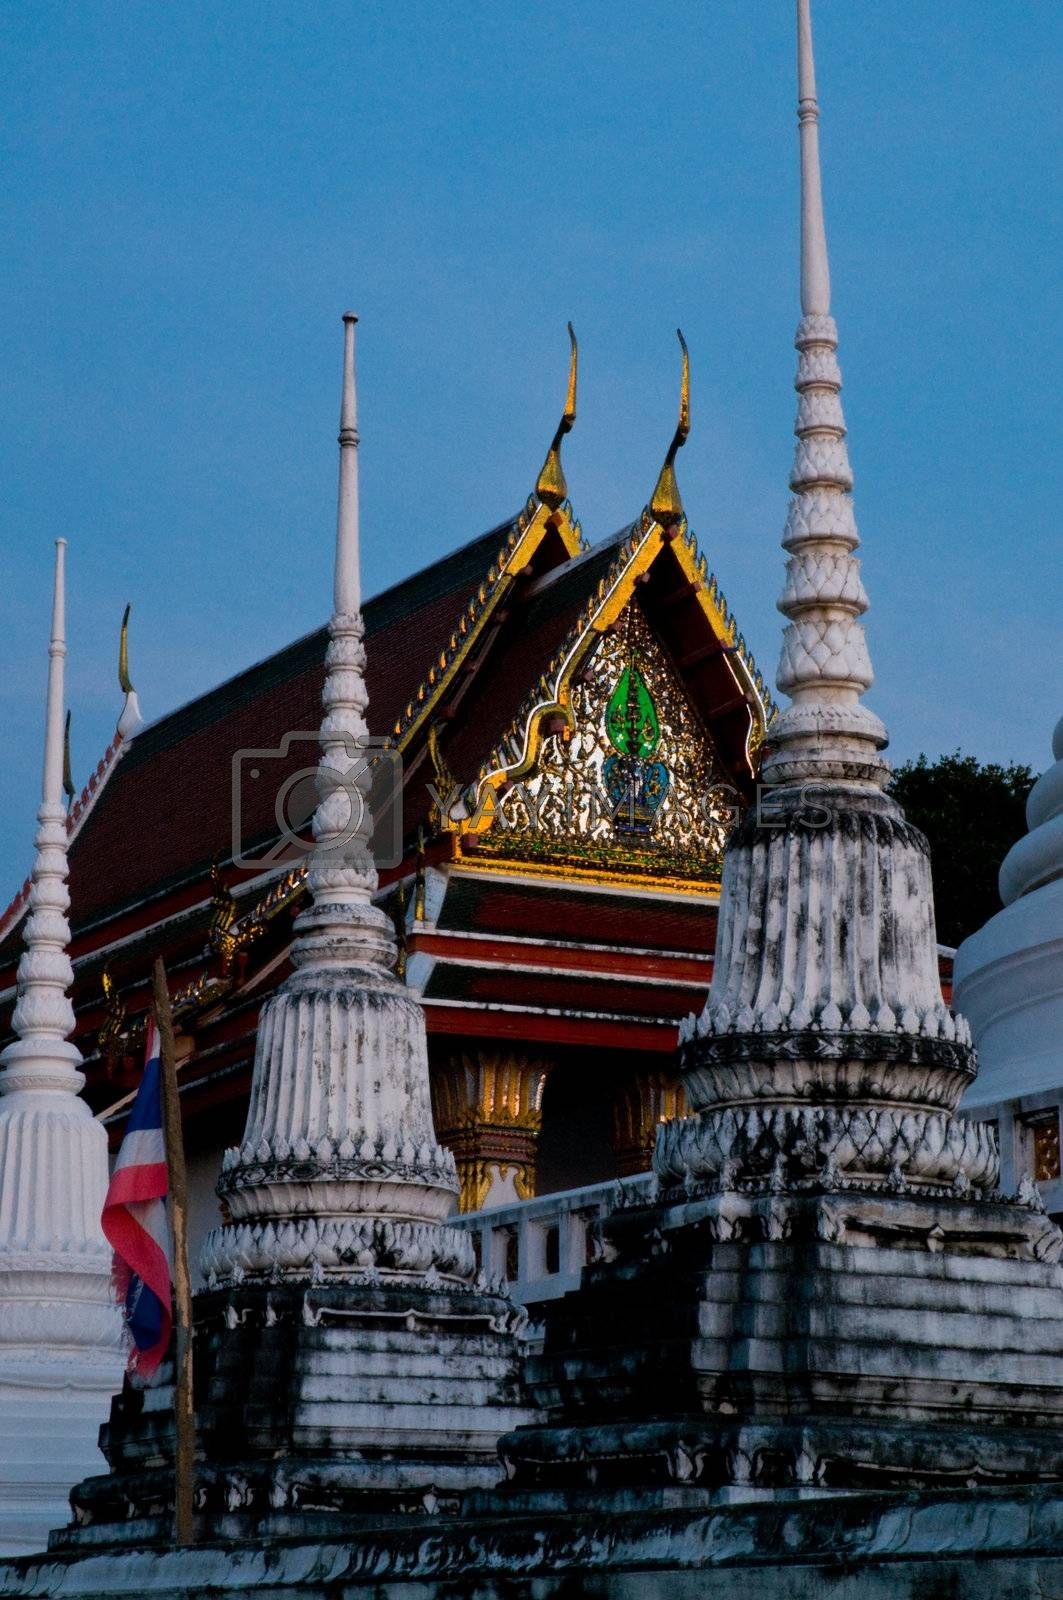 A tempel in a wat during a full moon night